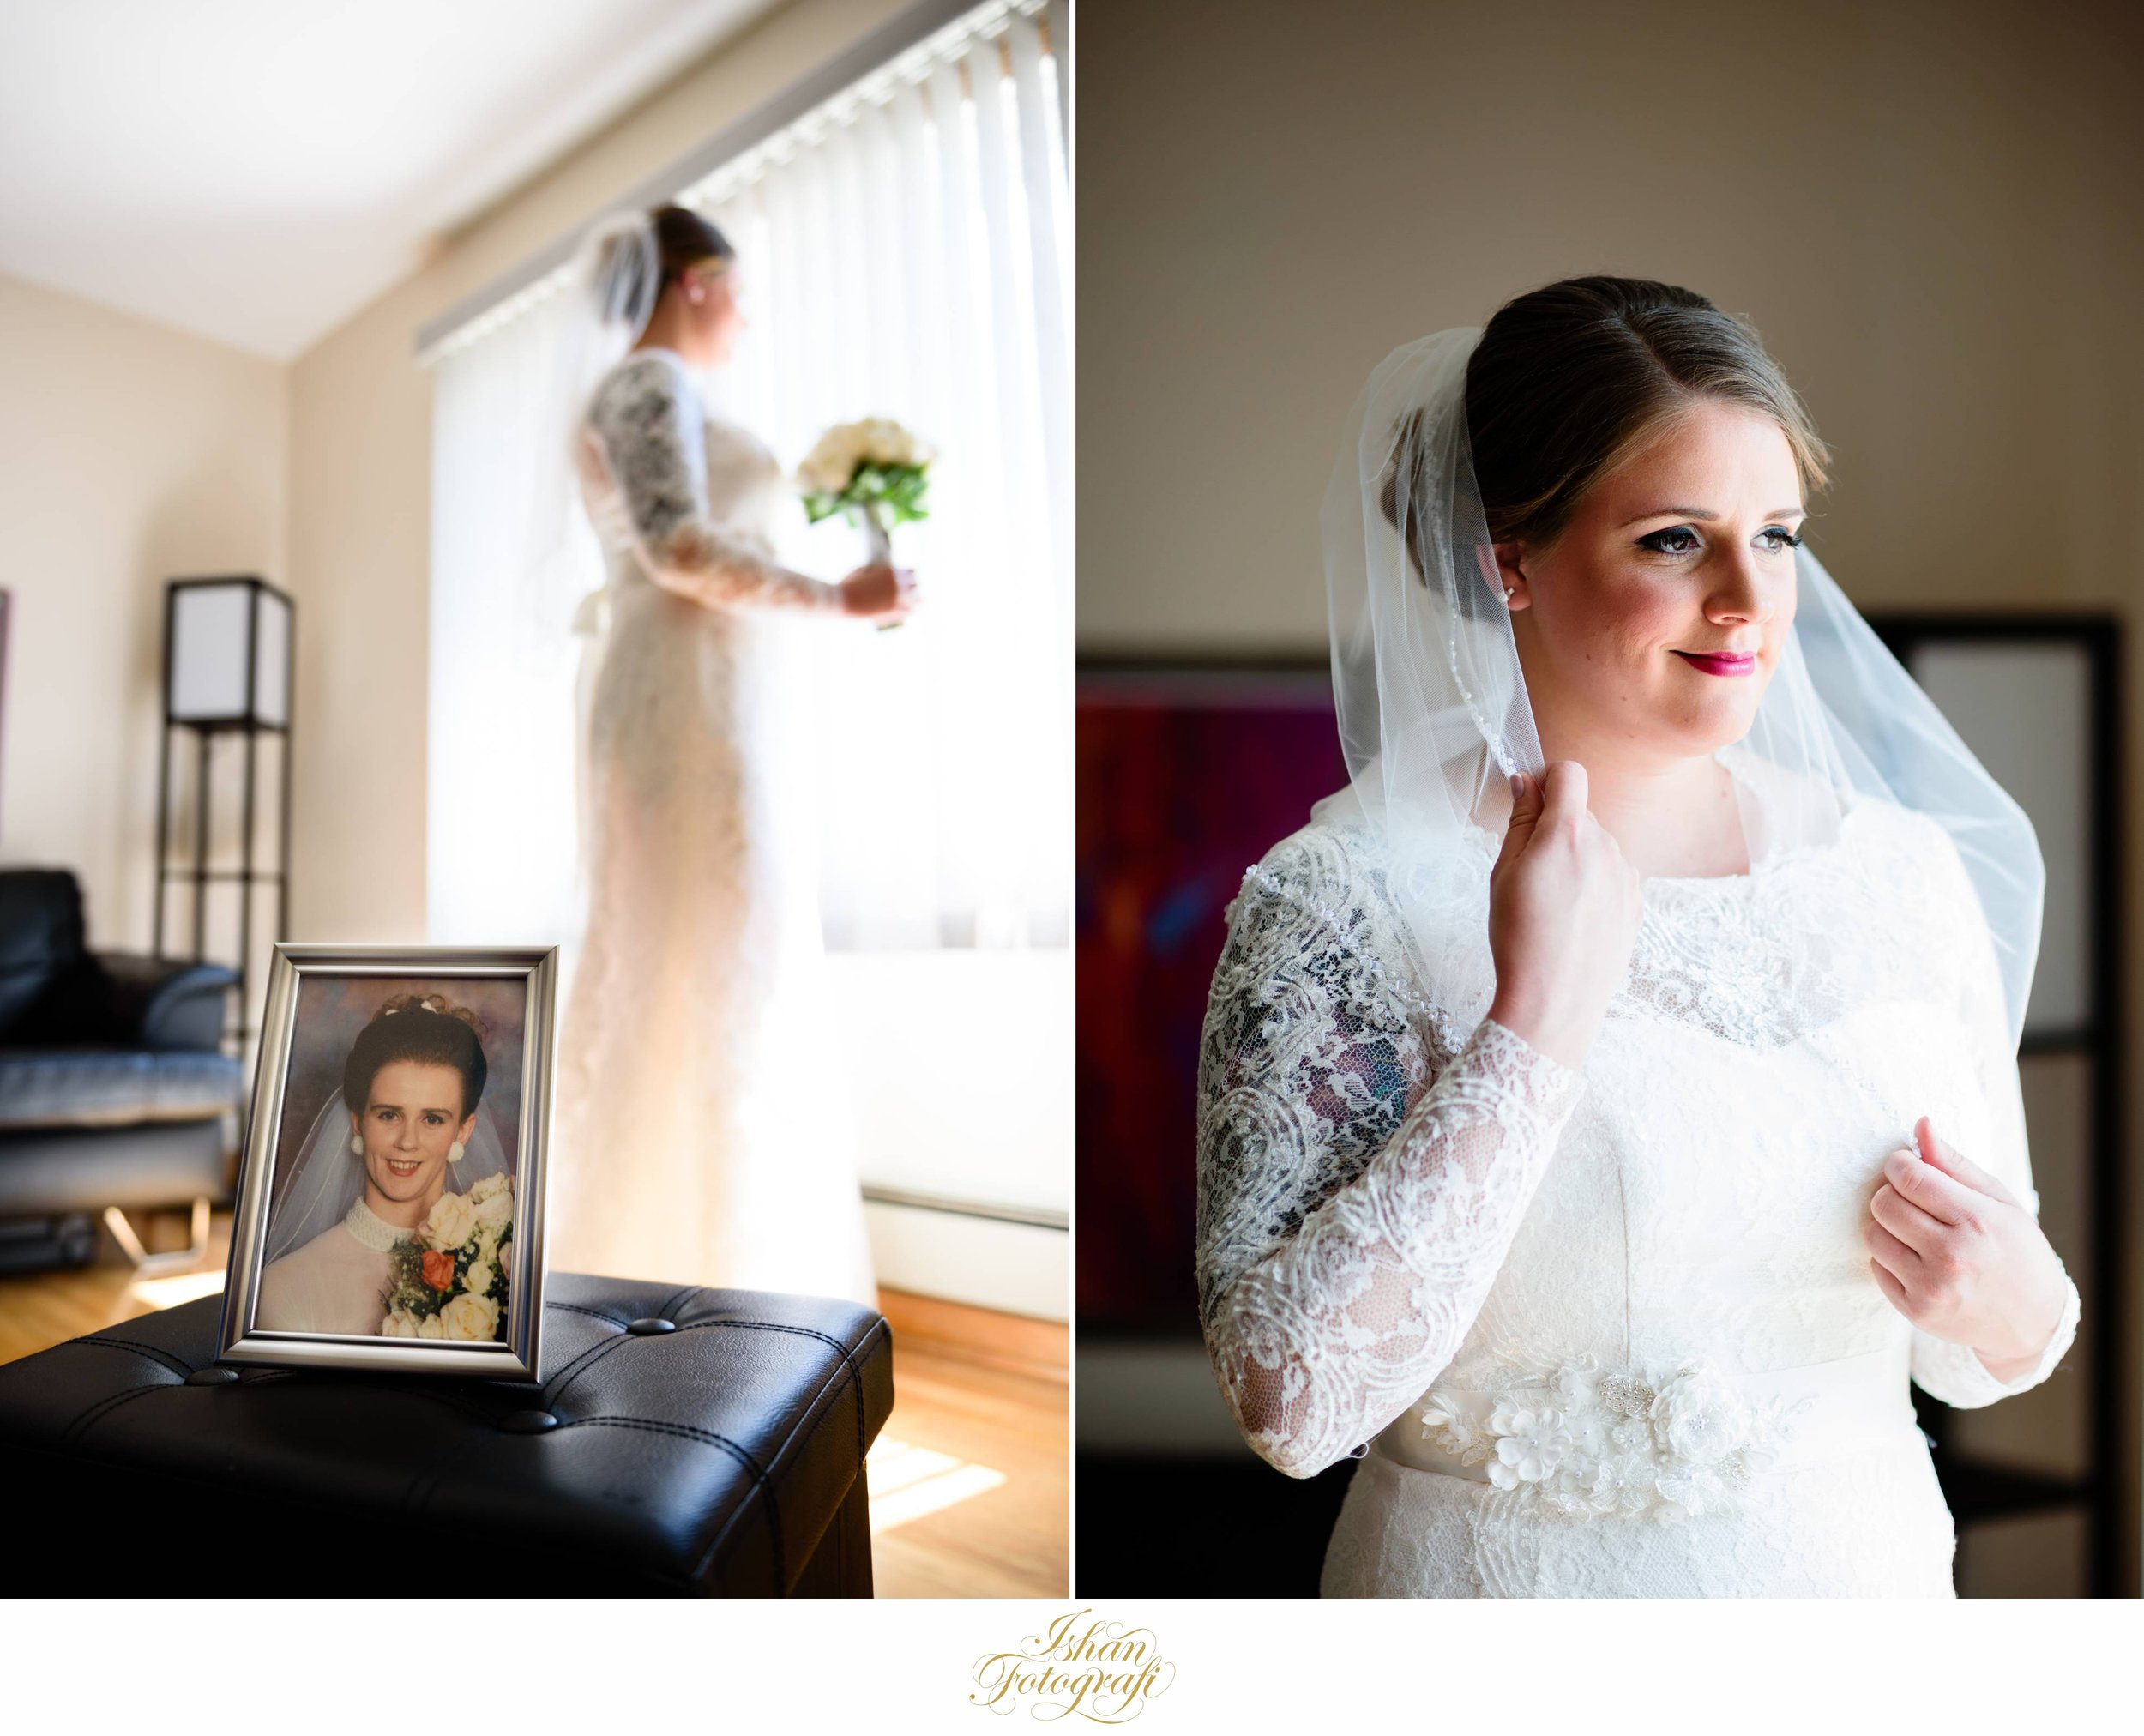 A photograph of Amanda's mother at her own wedding. Sadly, her mother is no longer with us. Wedding photographs can be such powerful memories which are passed along for many generations to come. We wanted to create a meaningful photograph for our bride who was terribly missing her mother on her wedding day.